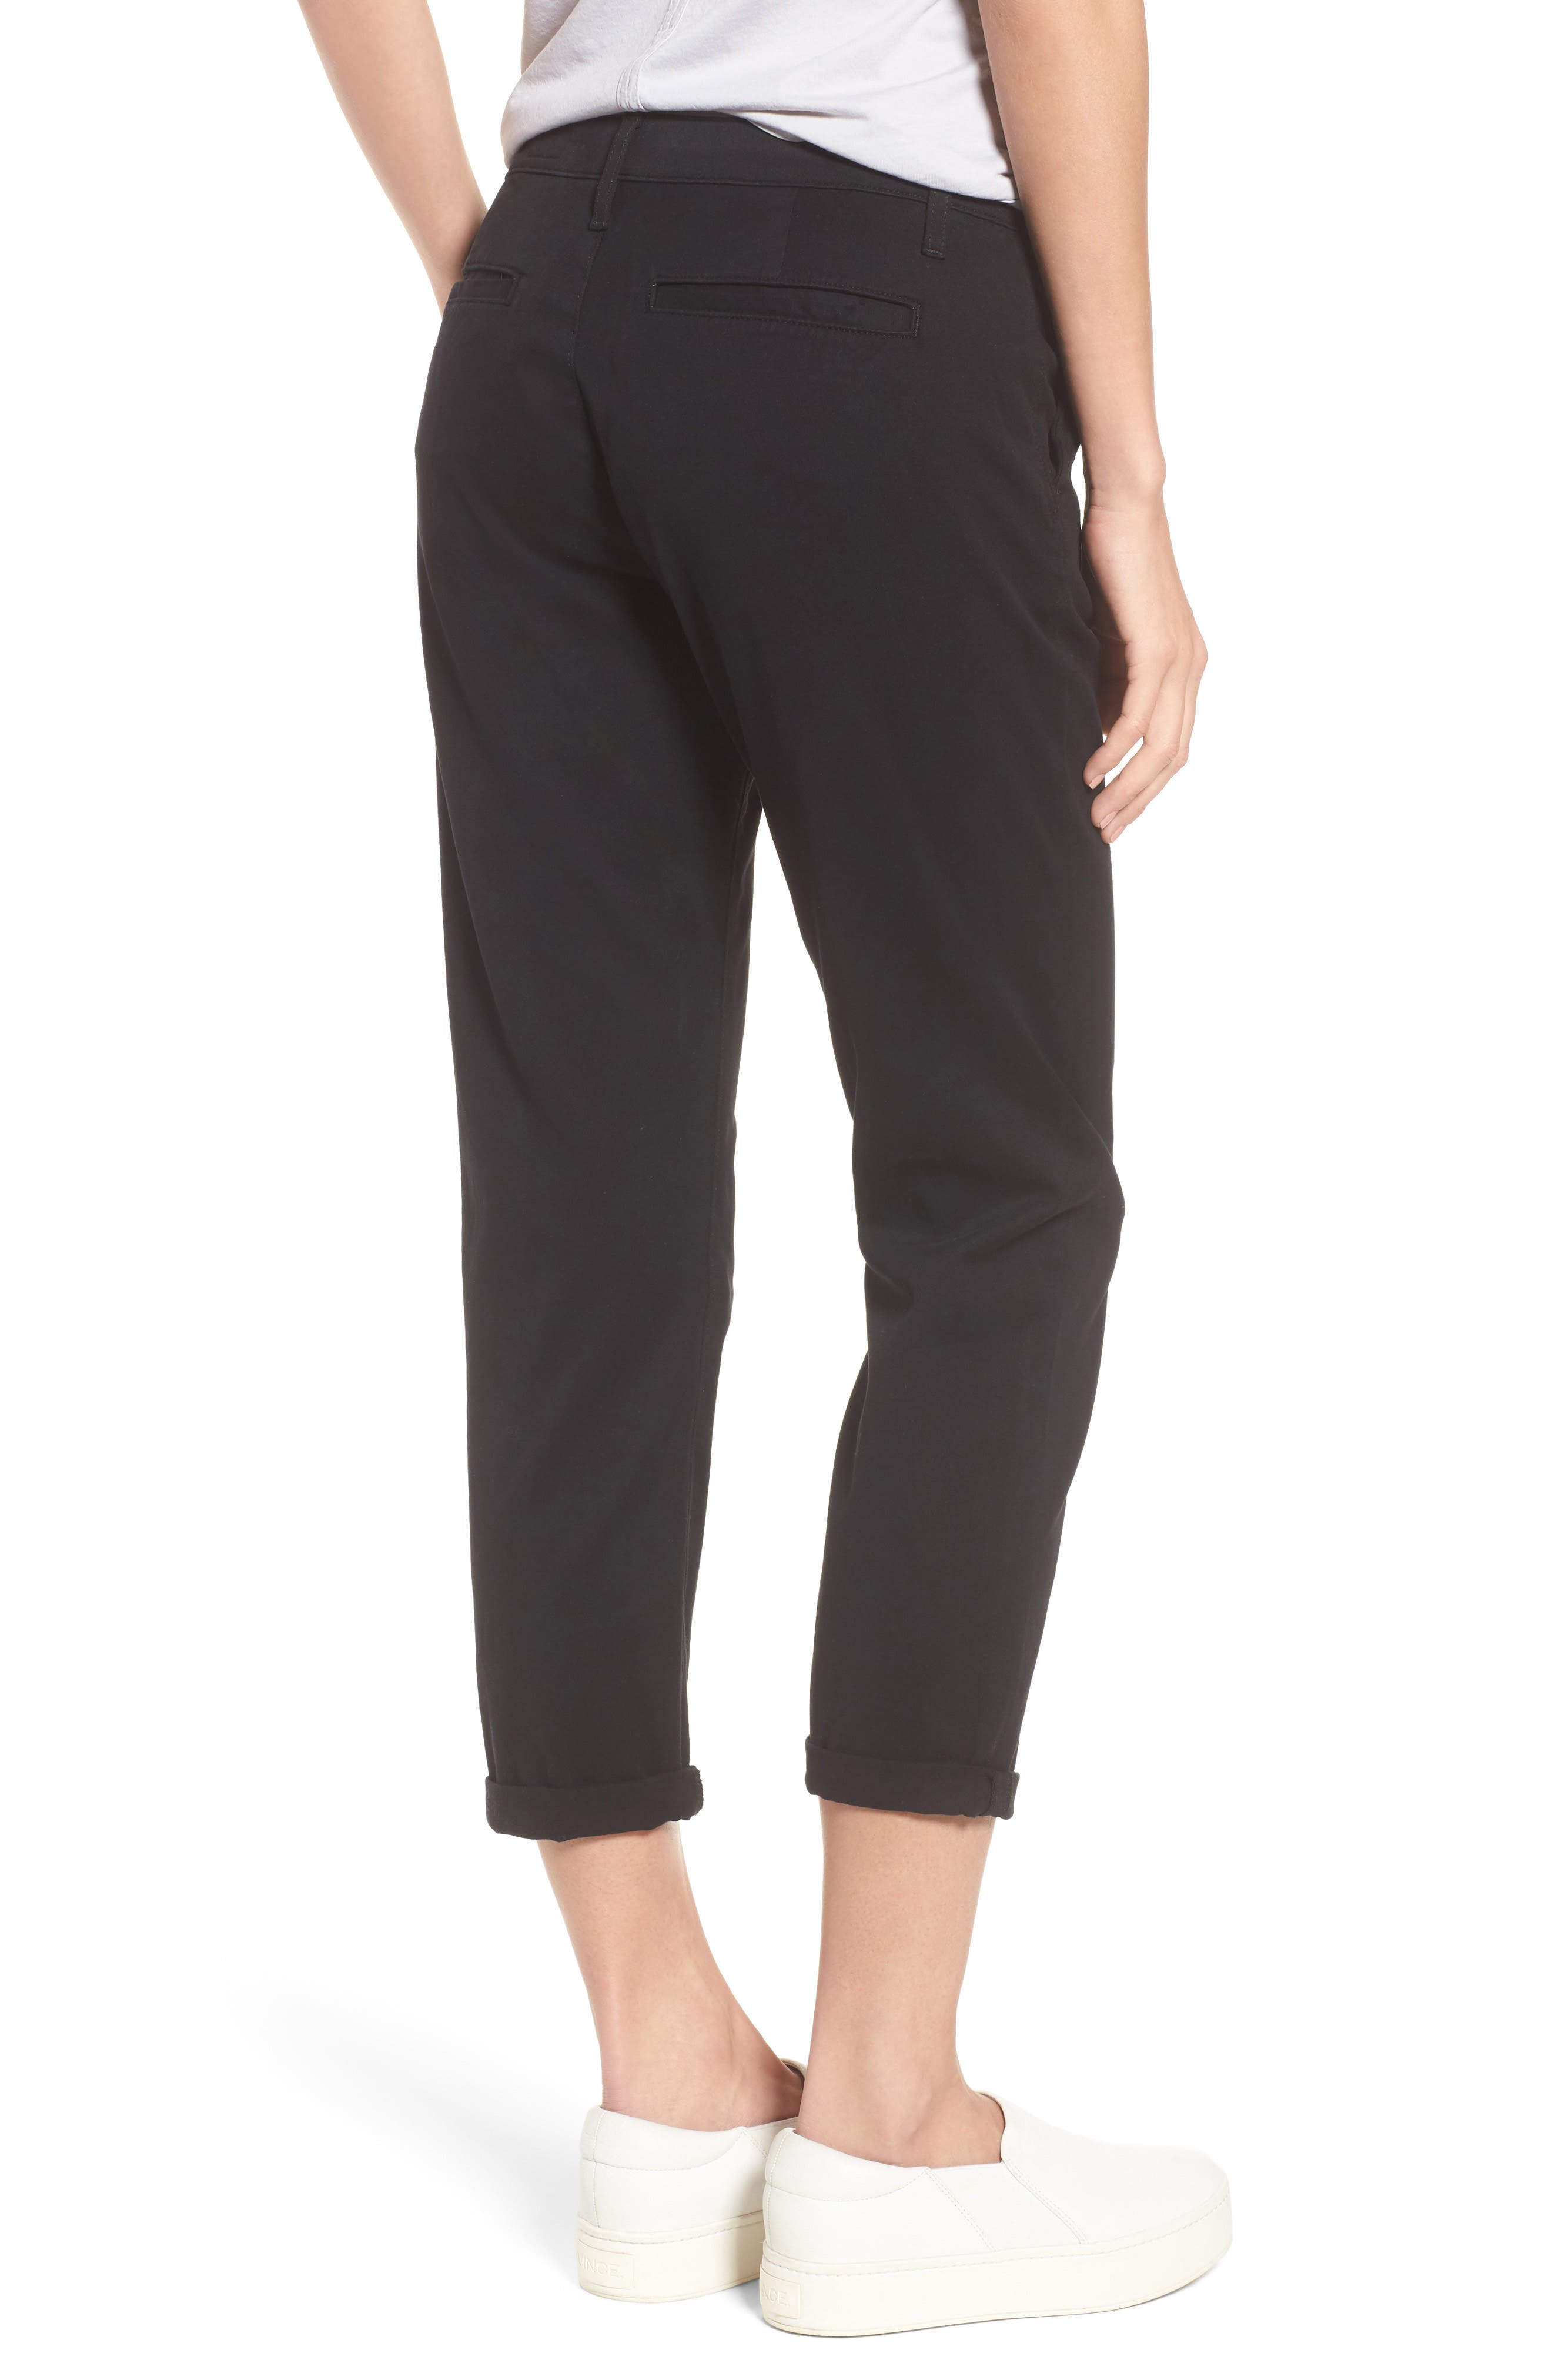 Caden Crop Twill Trousers,                             Alternate thumbnail 2, color,                             010